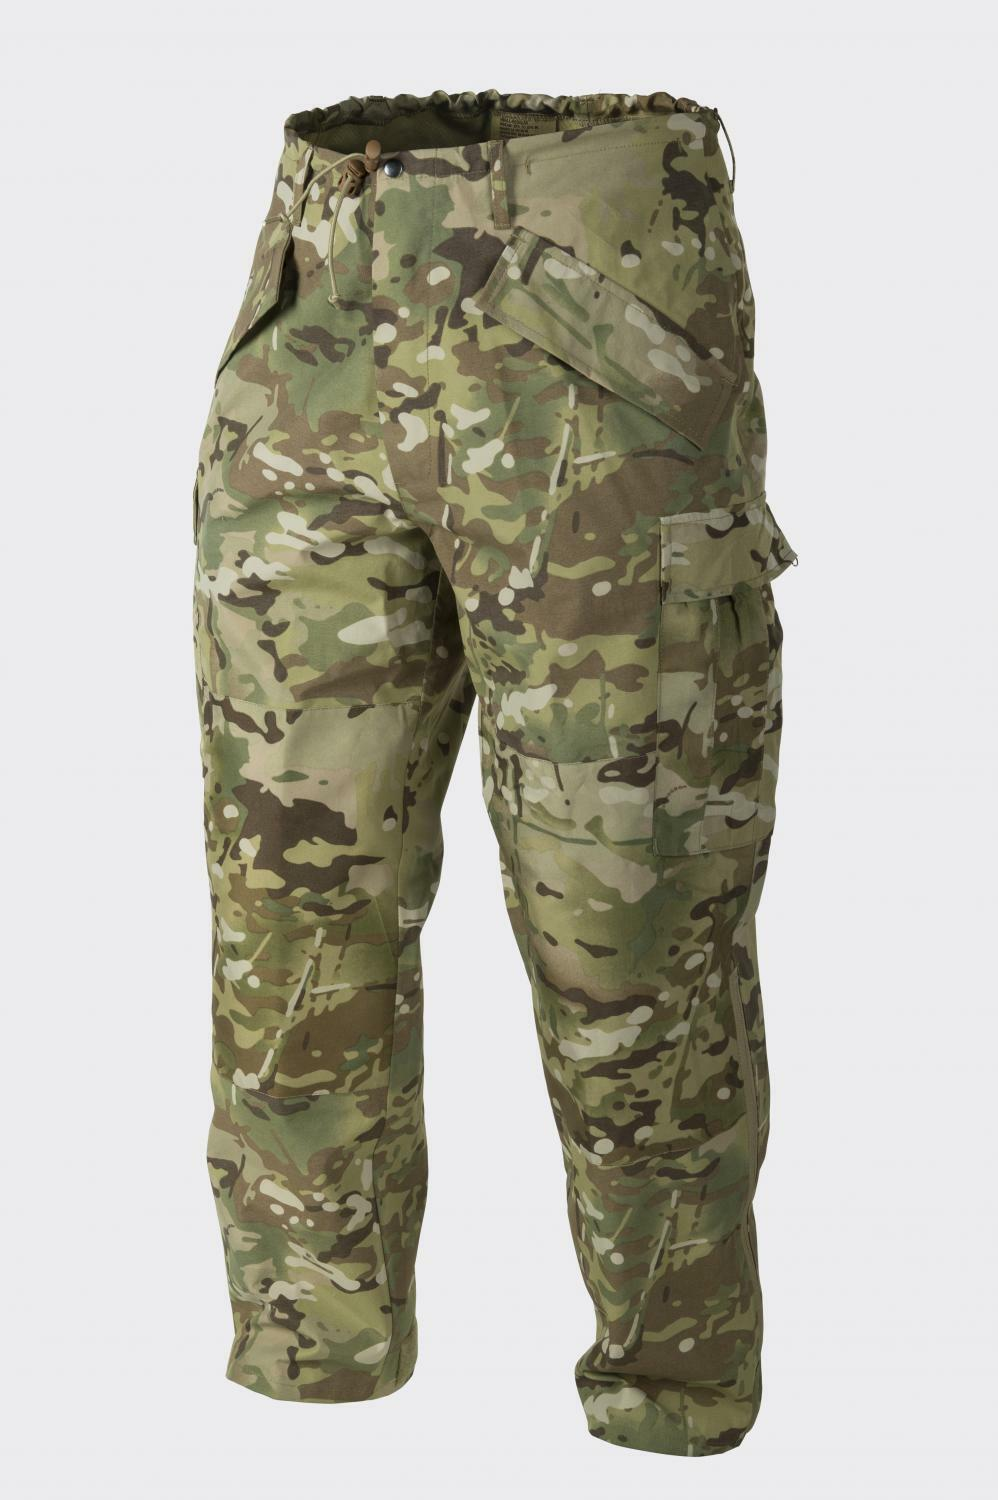 HELIKON TEX US GENERATION II Army ECWCS Military Hose CAMOGROM PANTS XXL